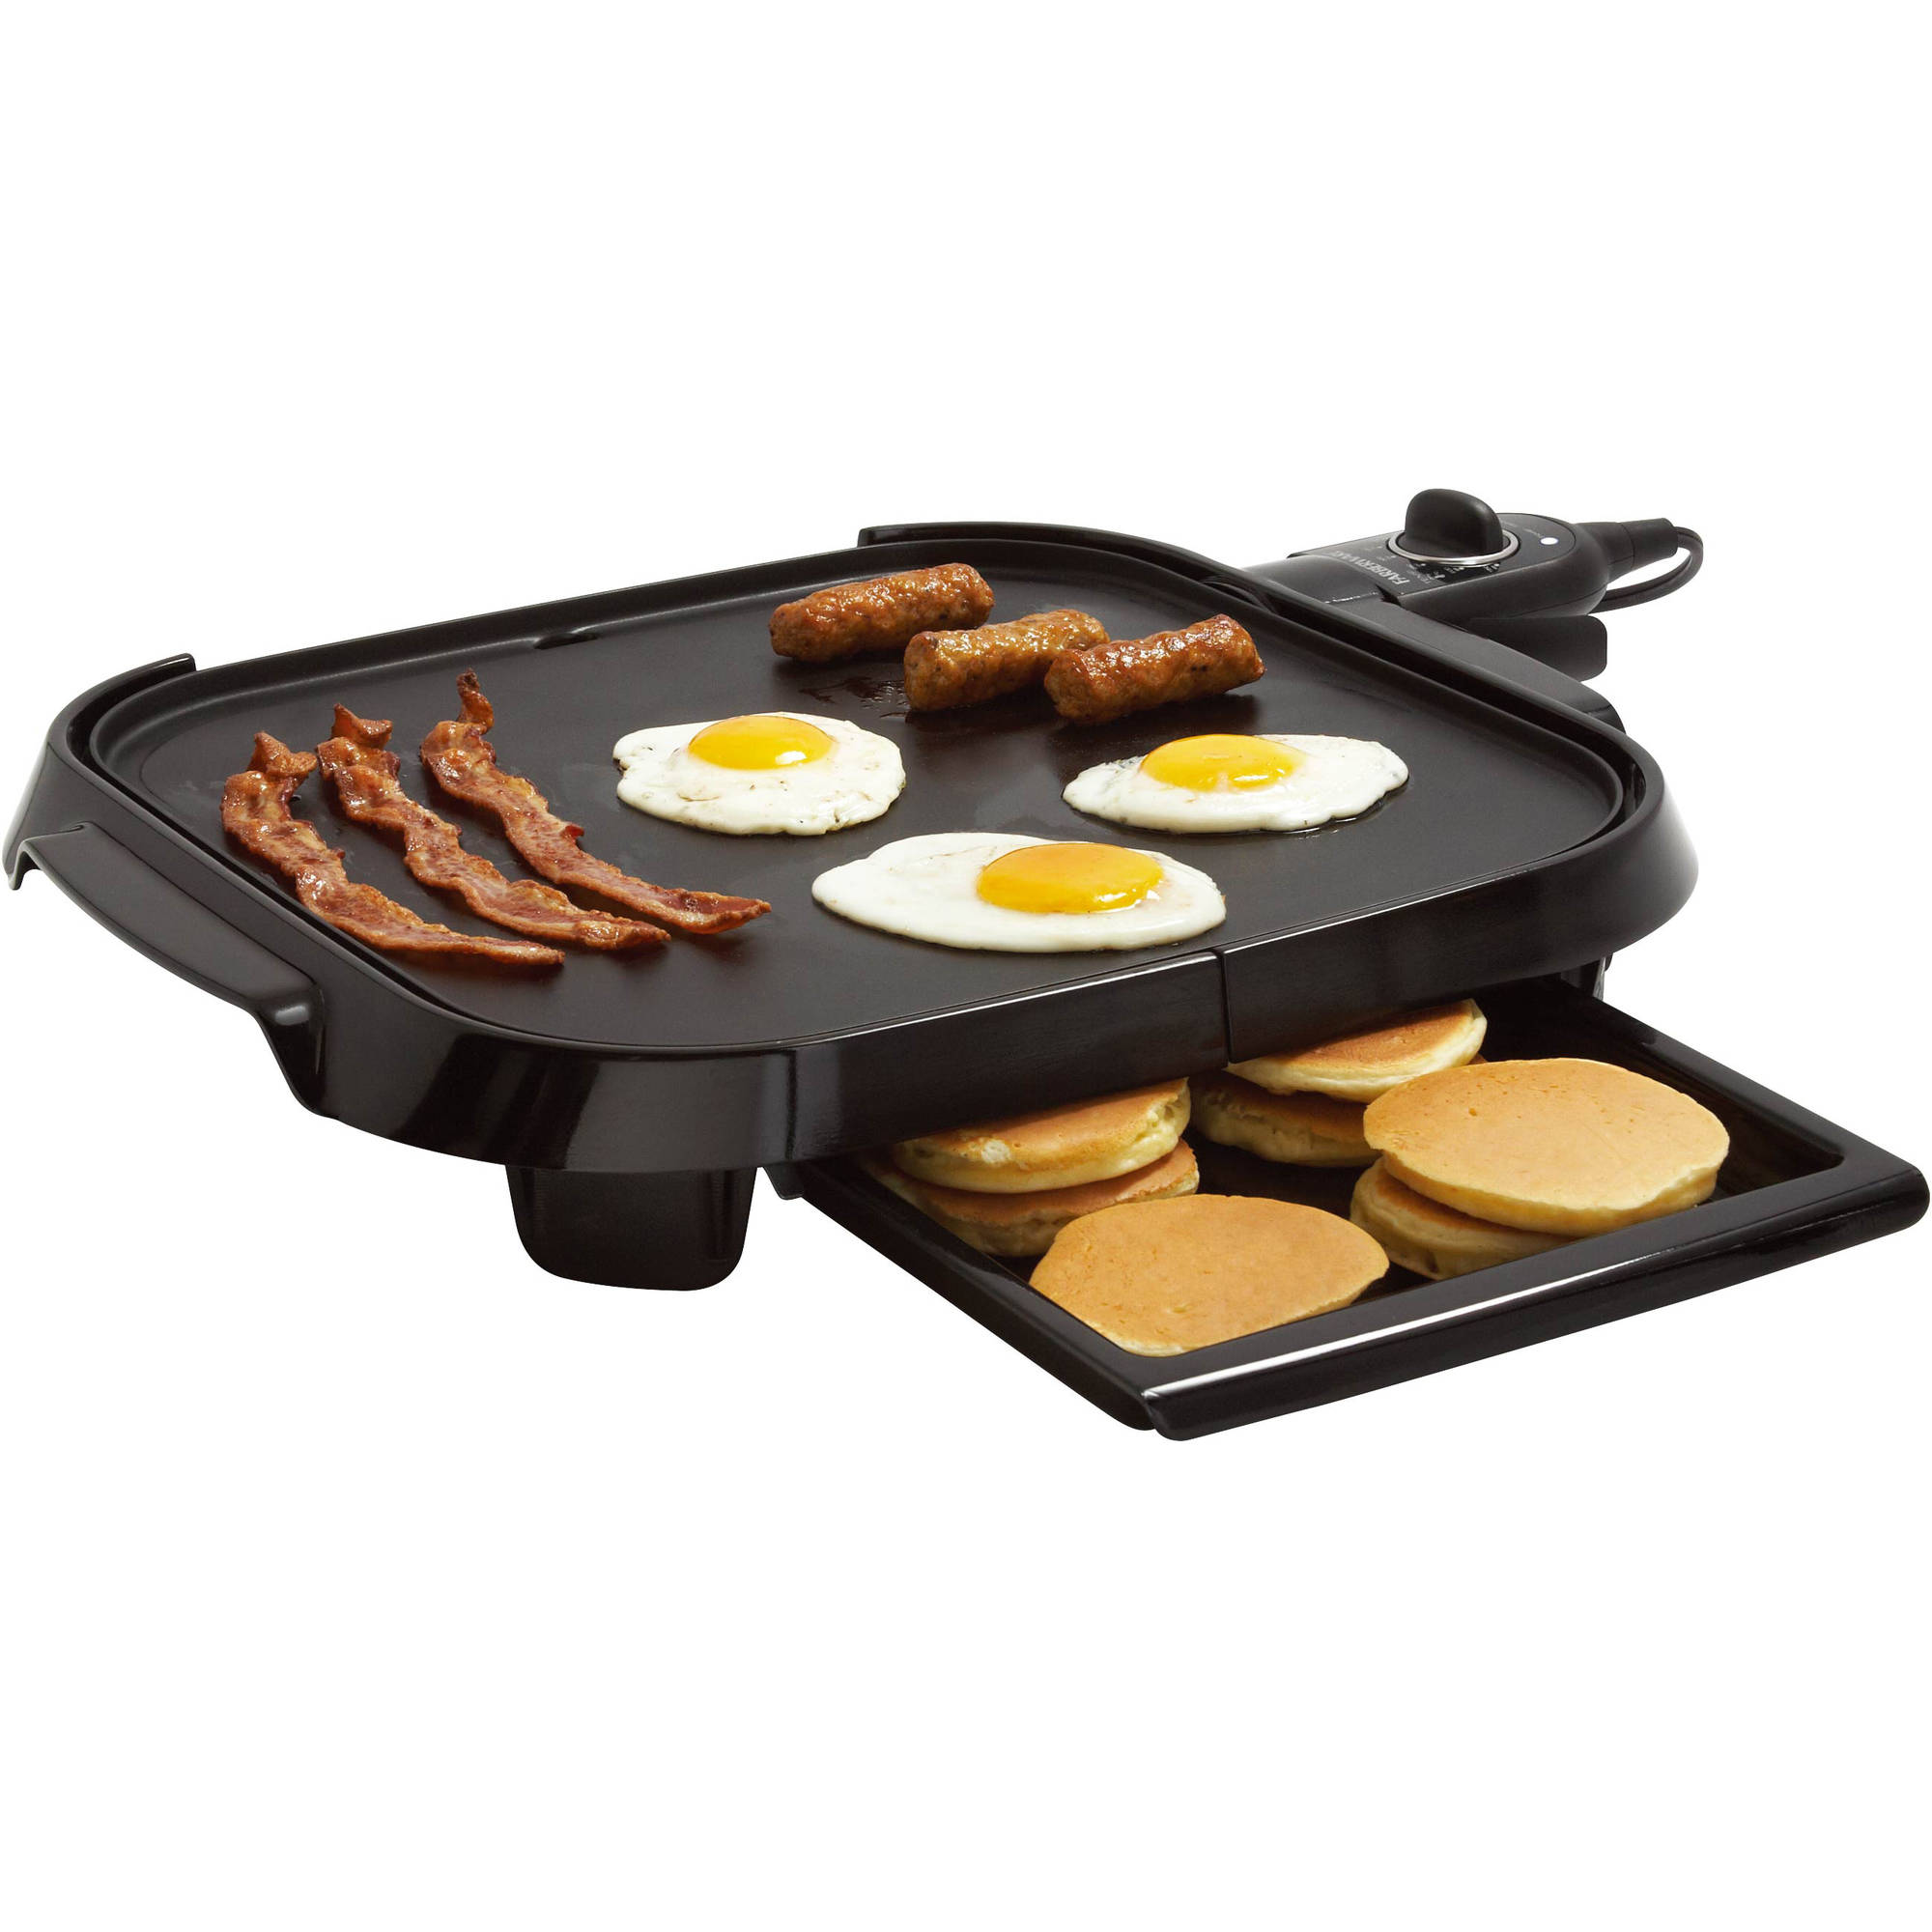 "Faberware Family-Size 14"" x 14"" Griddle, Black"